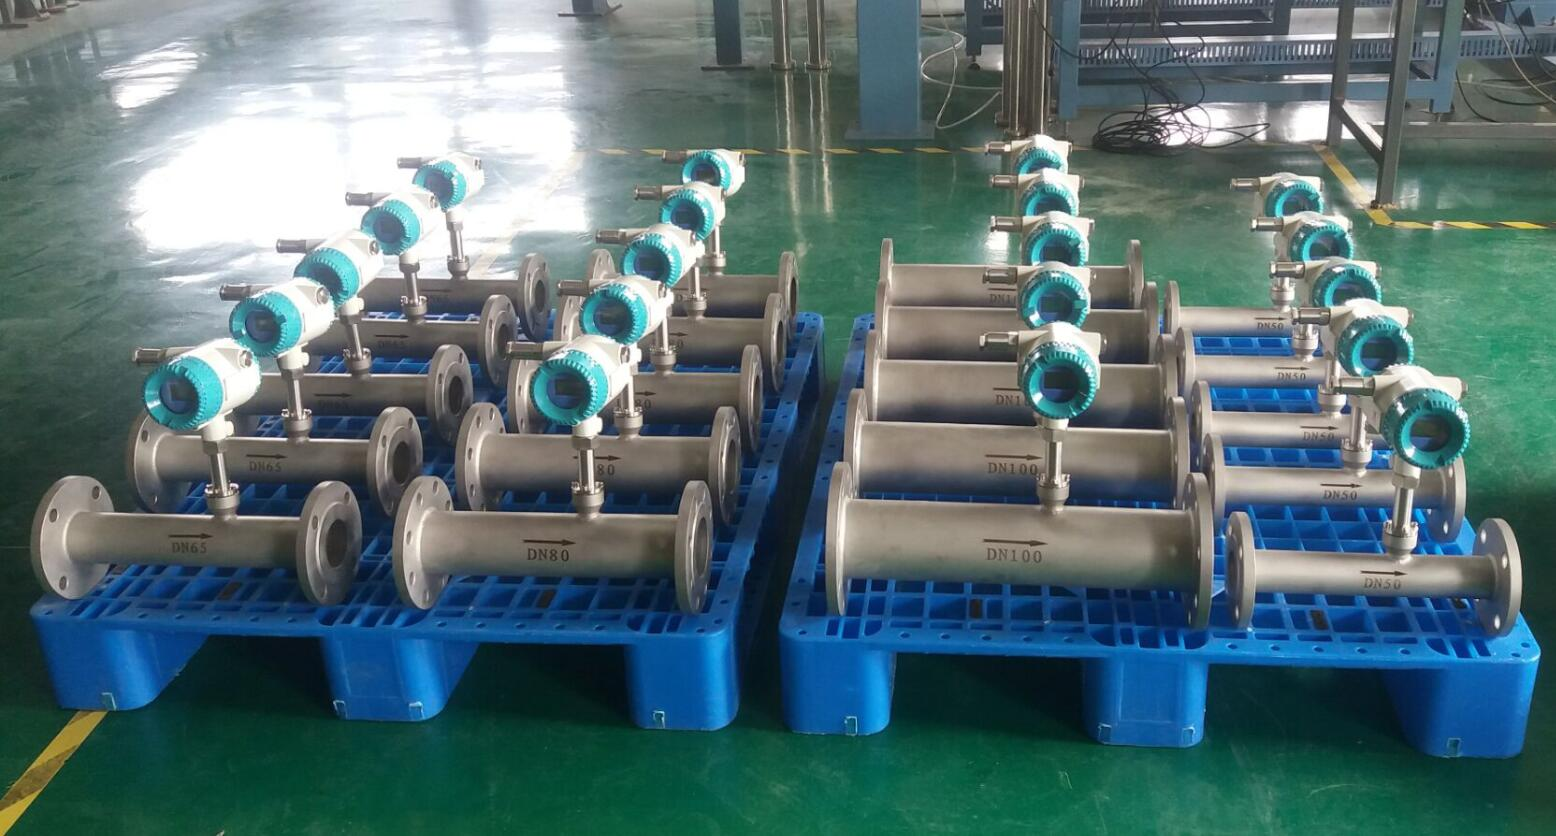 Big order thermal mass flowmeter ready for shipping.